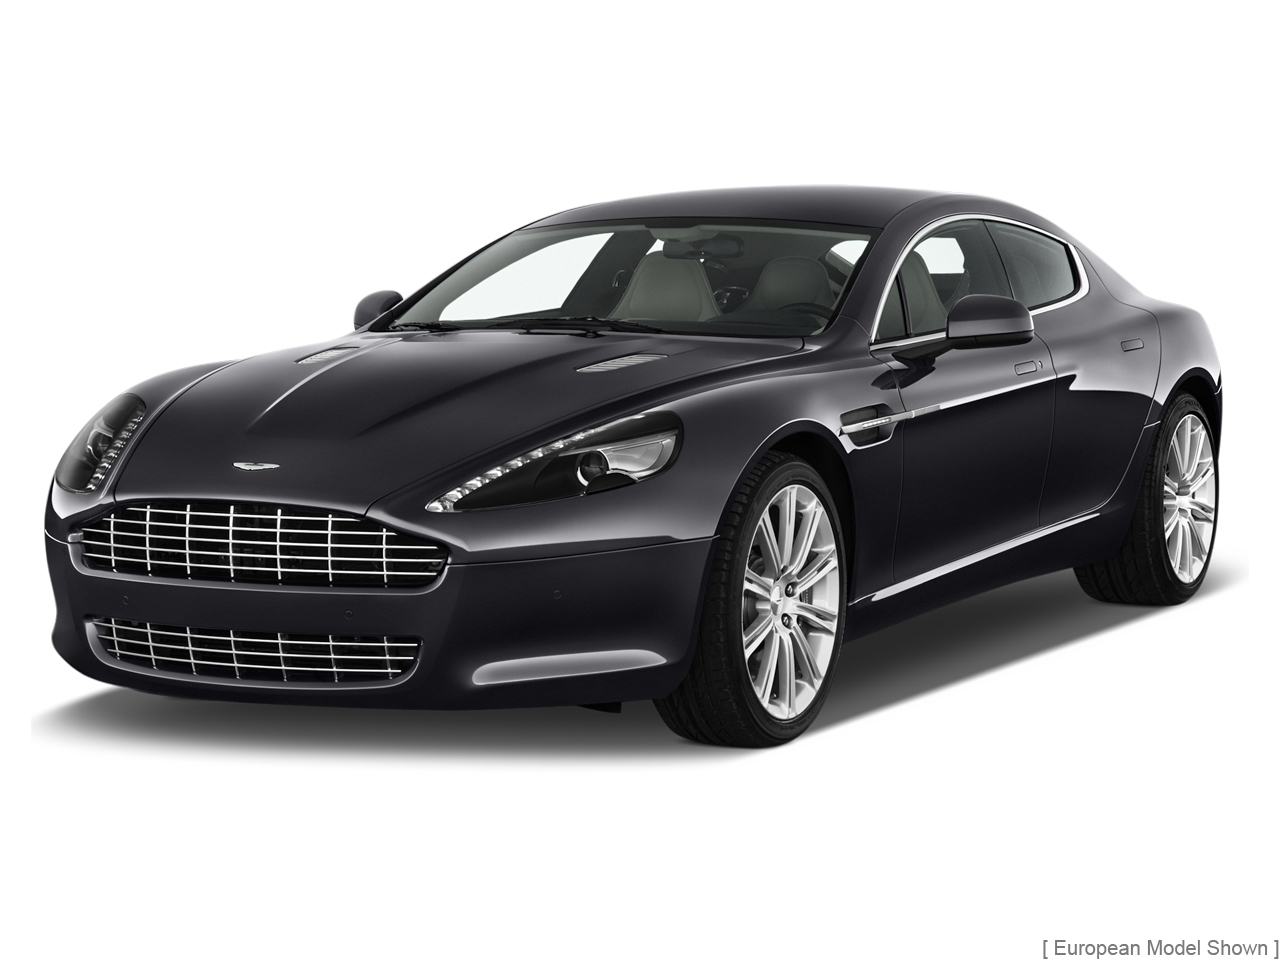 Le Meilleur 2011 Aston Martin Rapide Review And News Motorauthority Ce Mois Ci